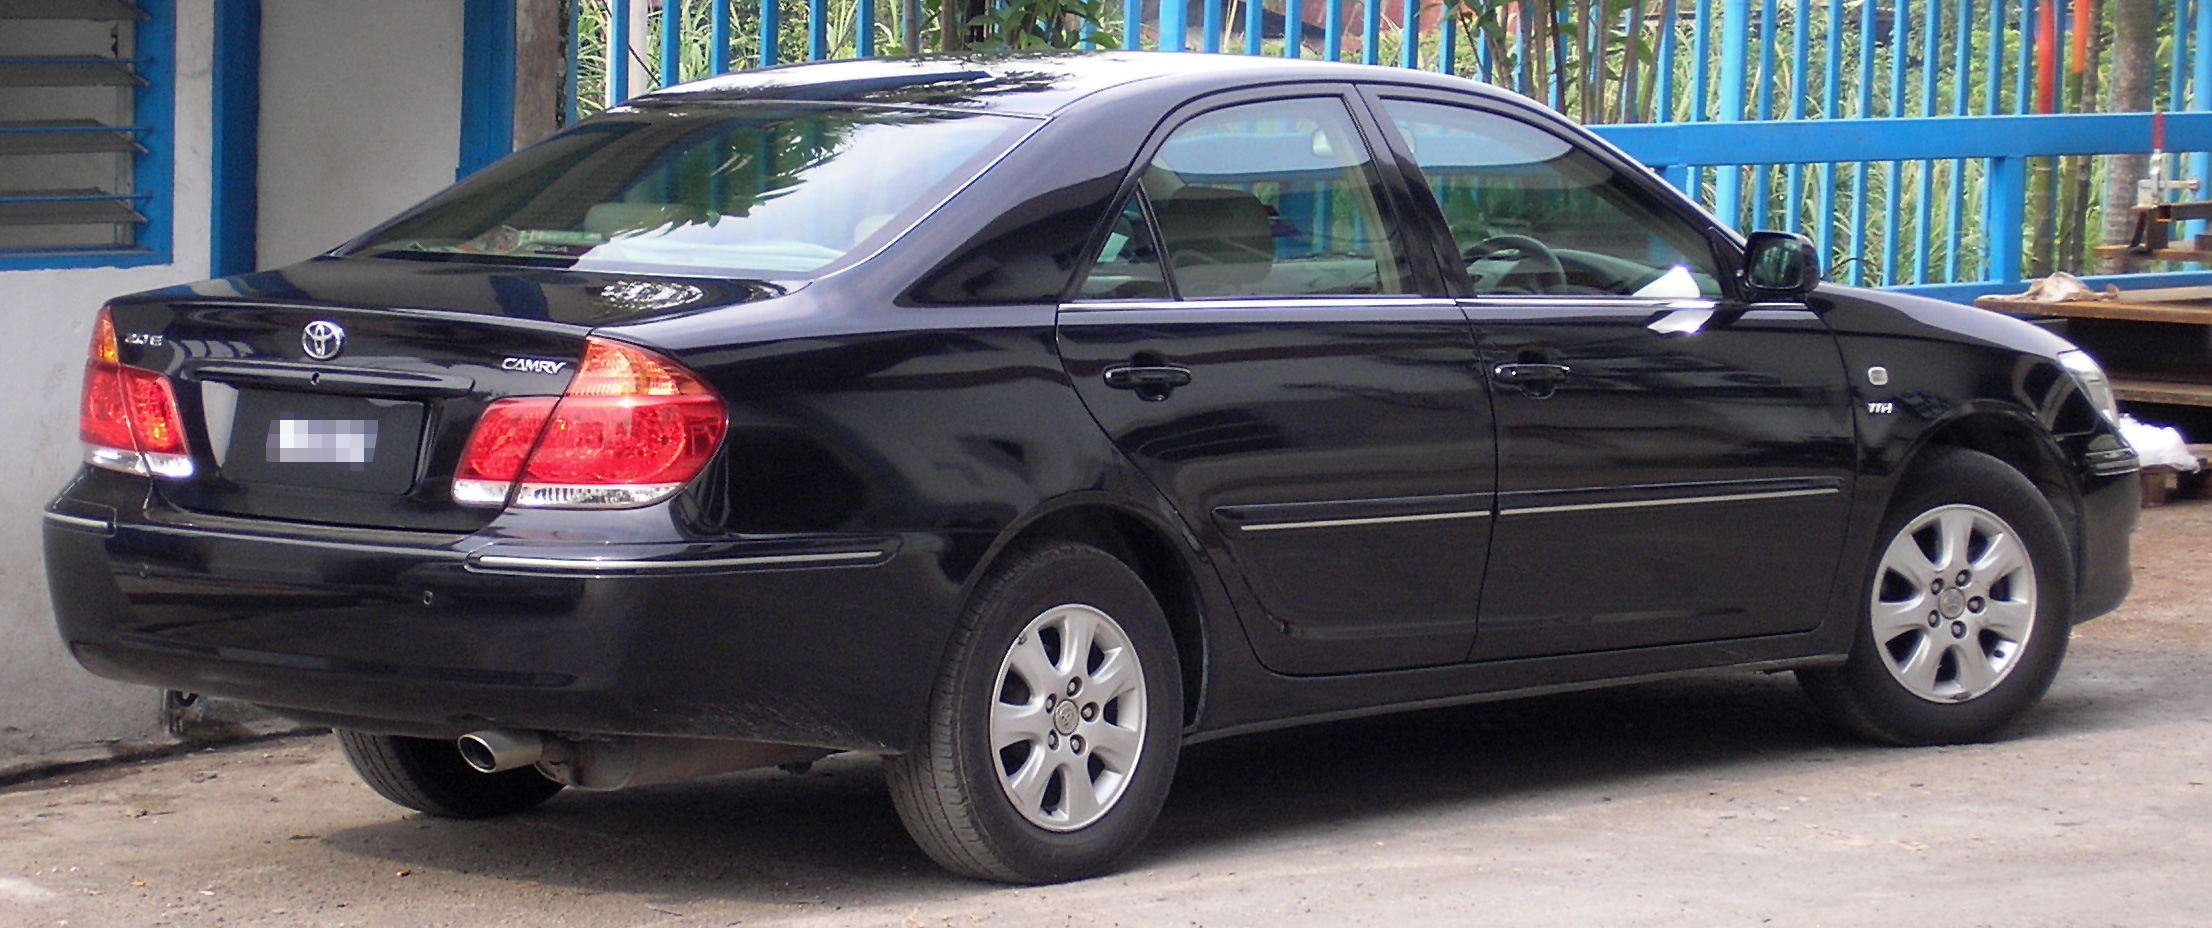 file toyota camry fifth generation first facelift rear kuala wikimedia commons. Black Bedroom Furniture Sets. Home Design Ideas